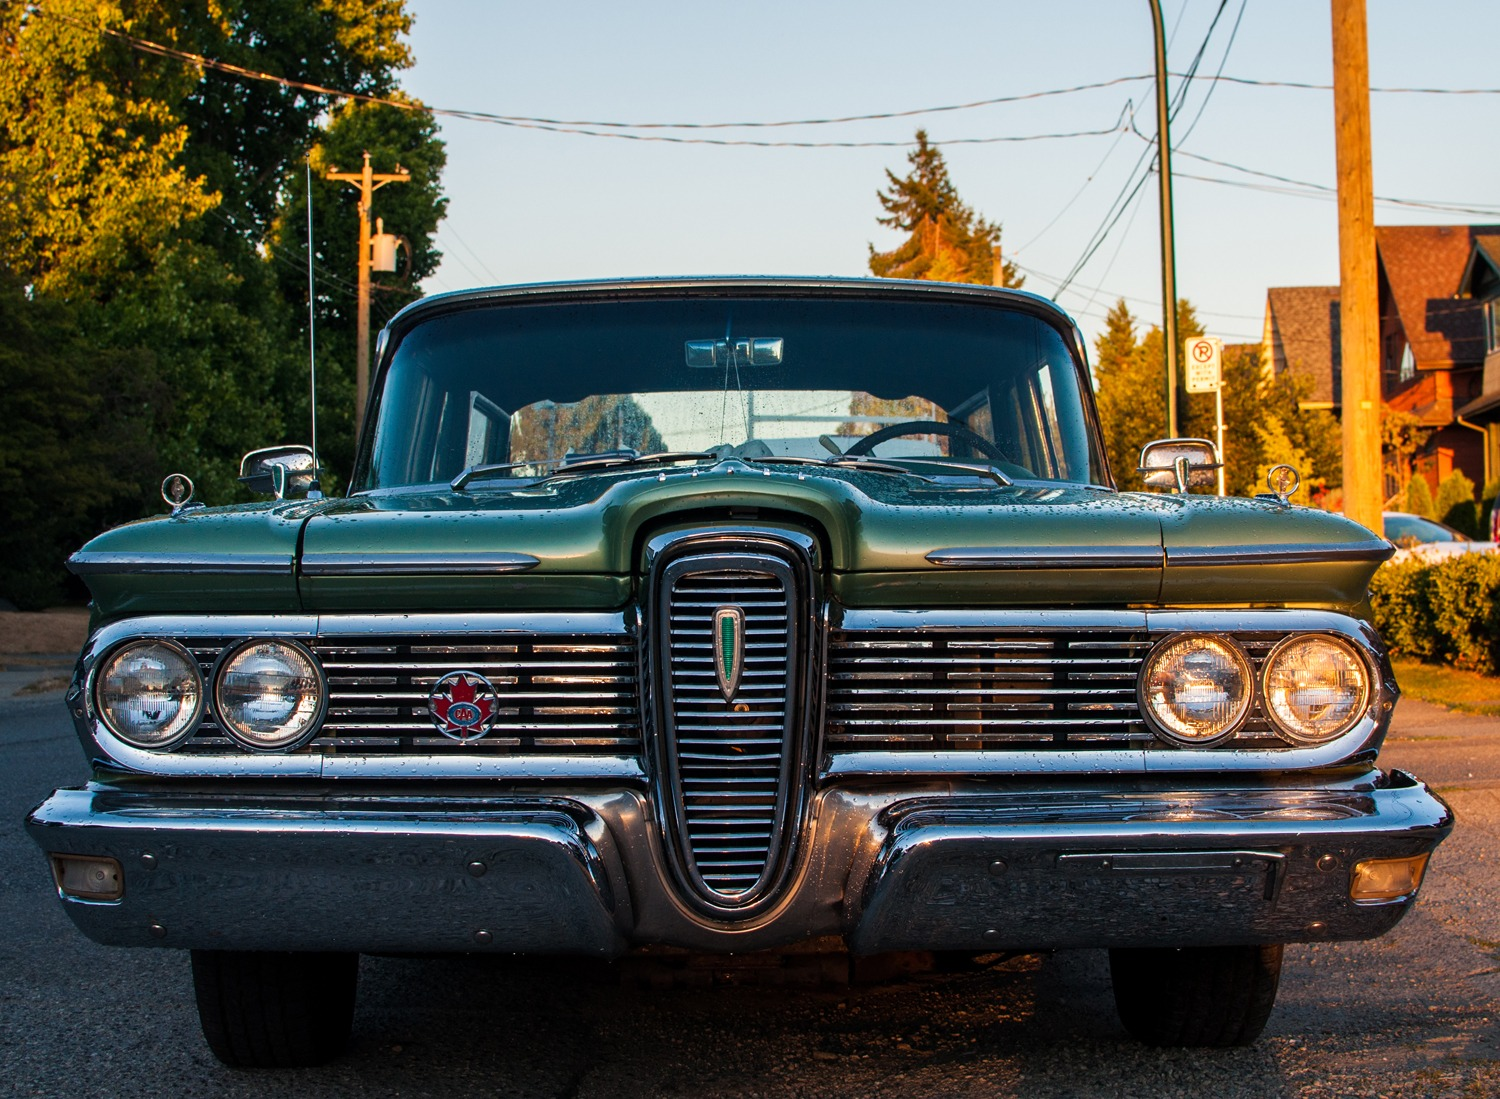 1959 Ford Edsel Front Grill